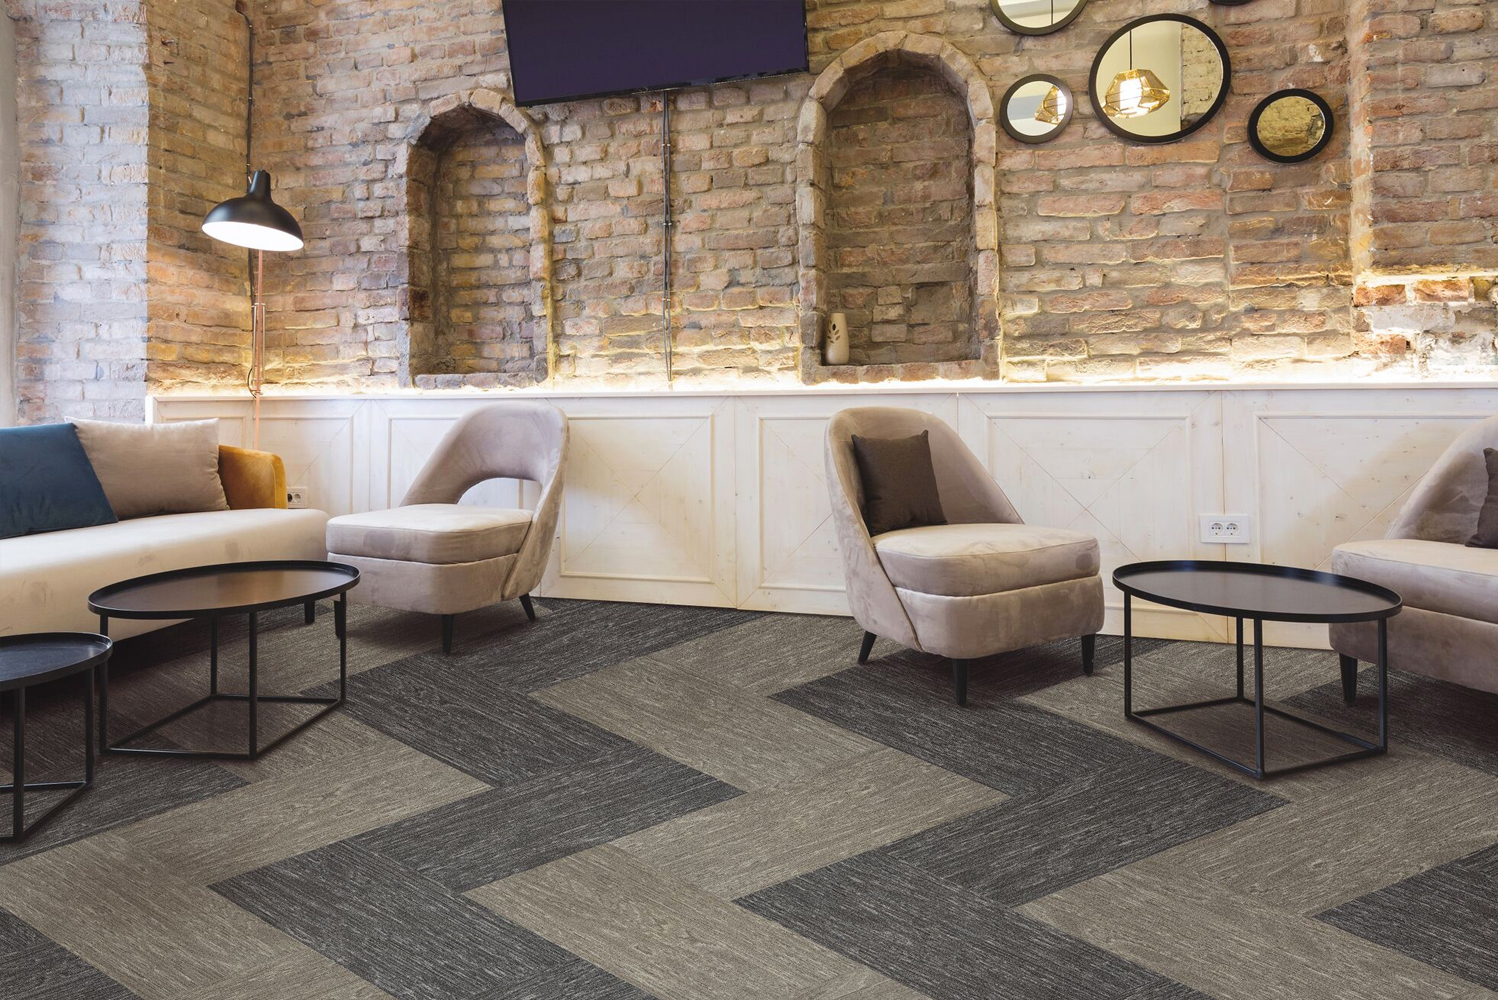 Tarkett launched SineEffect, a new modular and Powerbond soft surface collection.